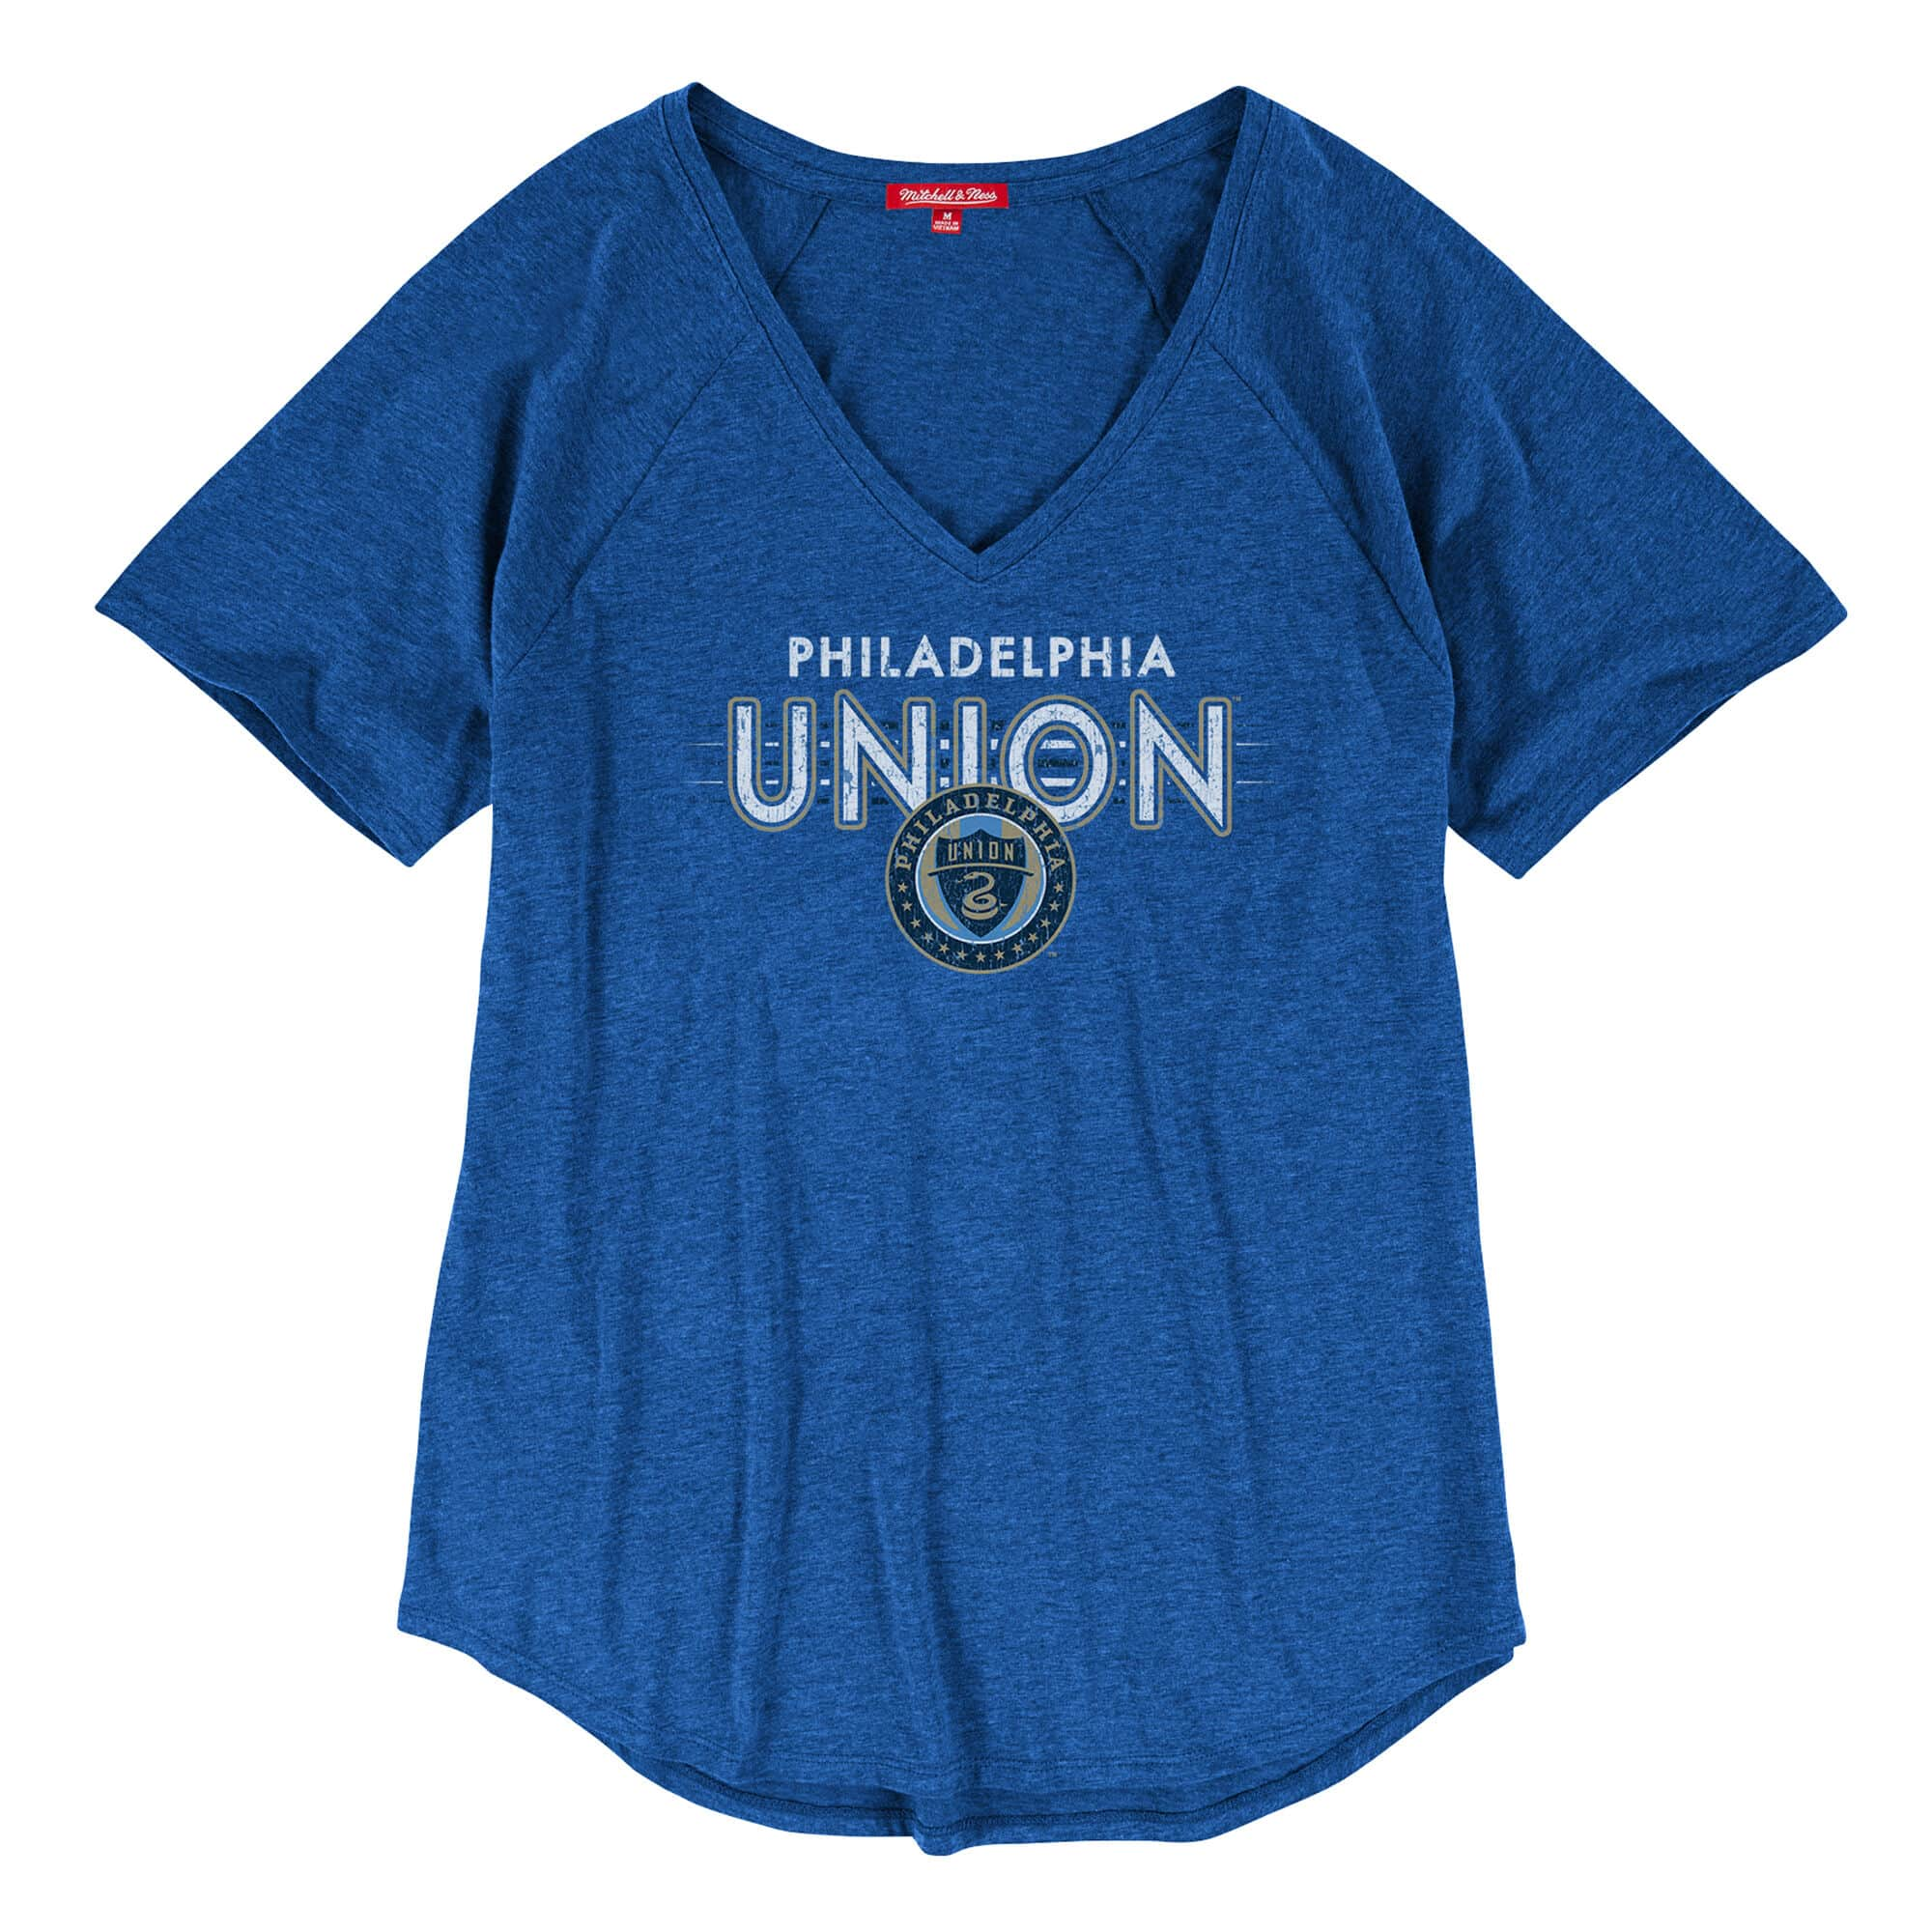 Women's Visiting Team V-Neck Tee Philadelphia Union